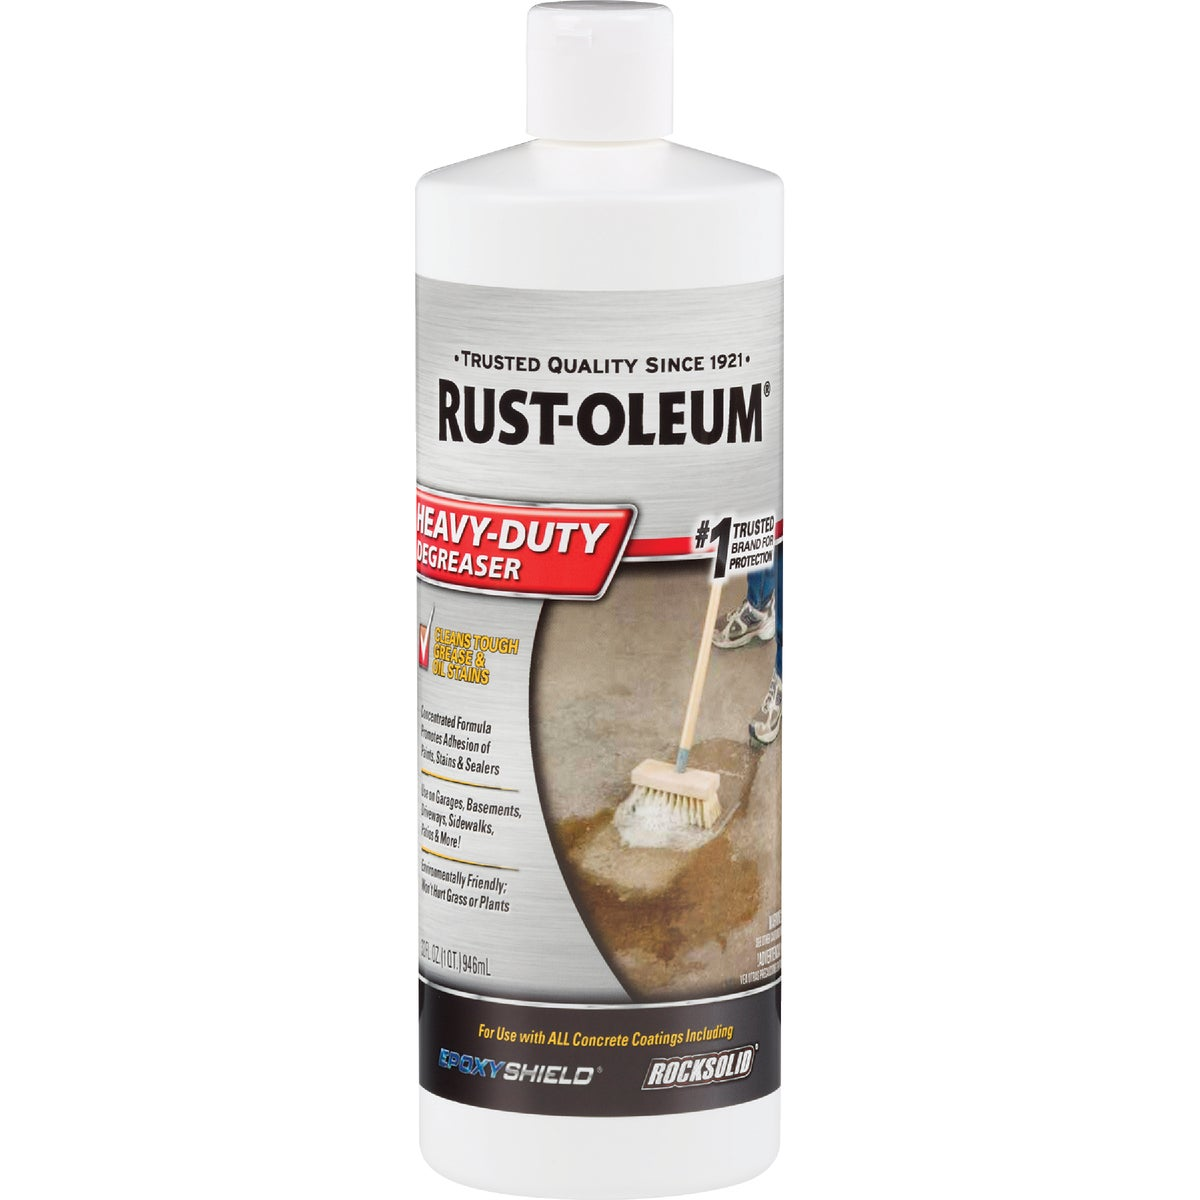 32OZ CONCRETE DEGREASER - 214382 by Rustoleum